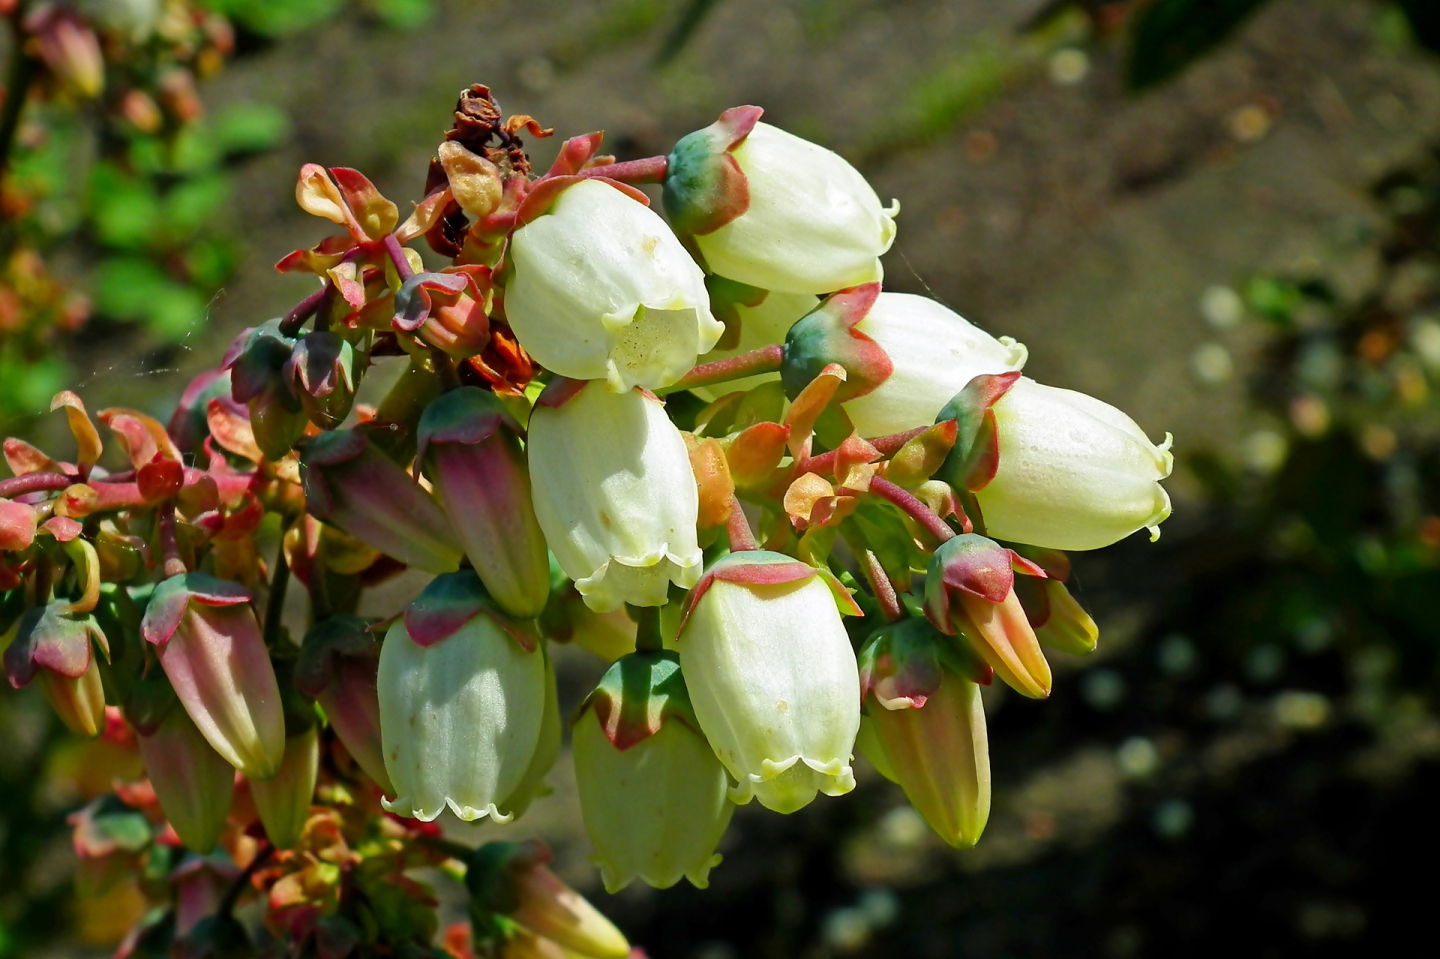 a cluster of blueberry flowers